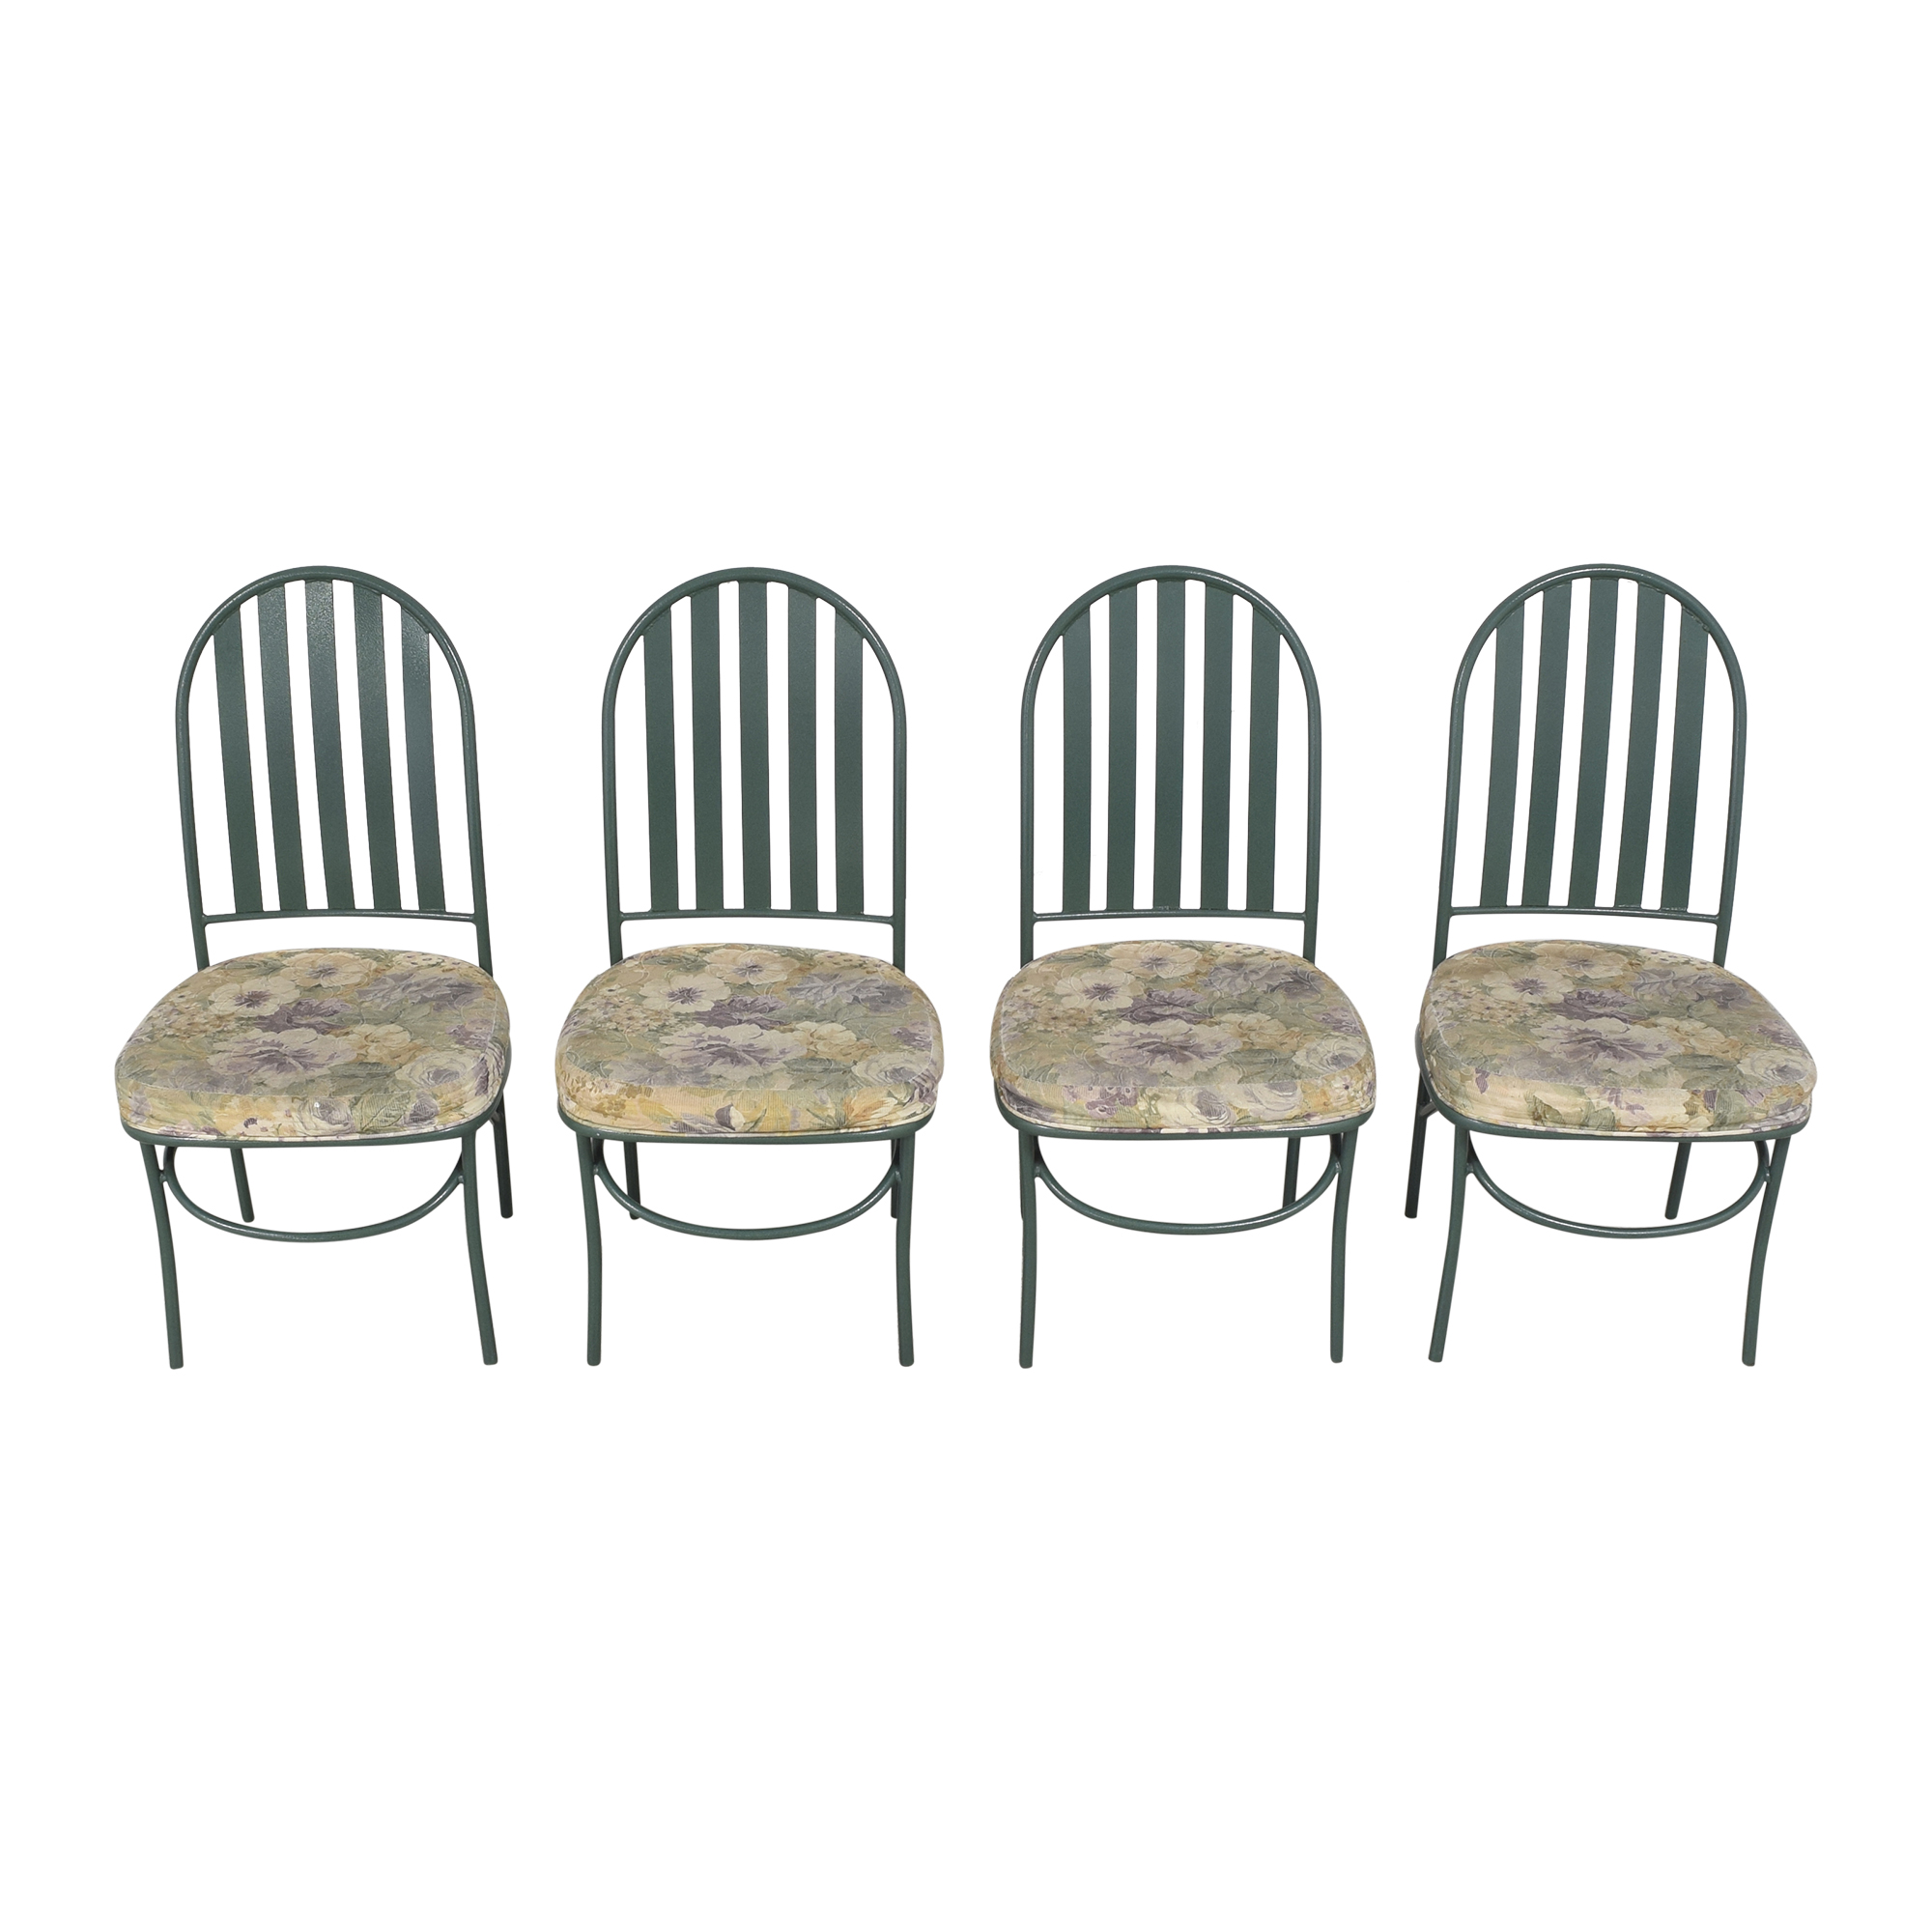 Floral Dining Chairs dimensions